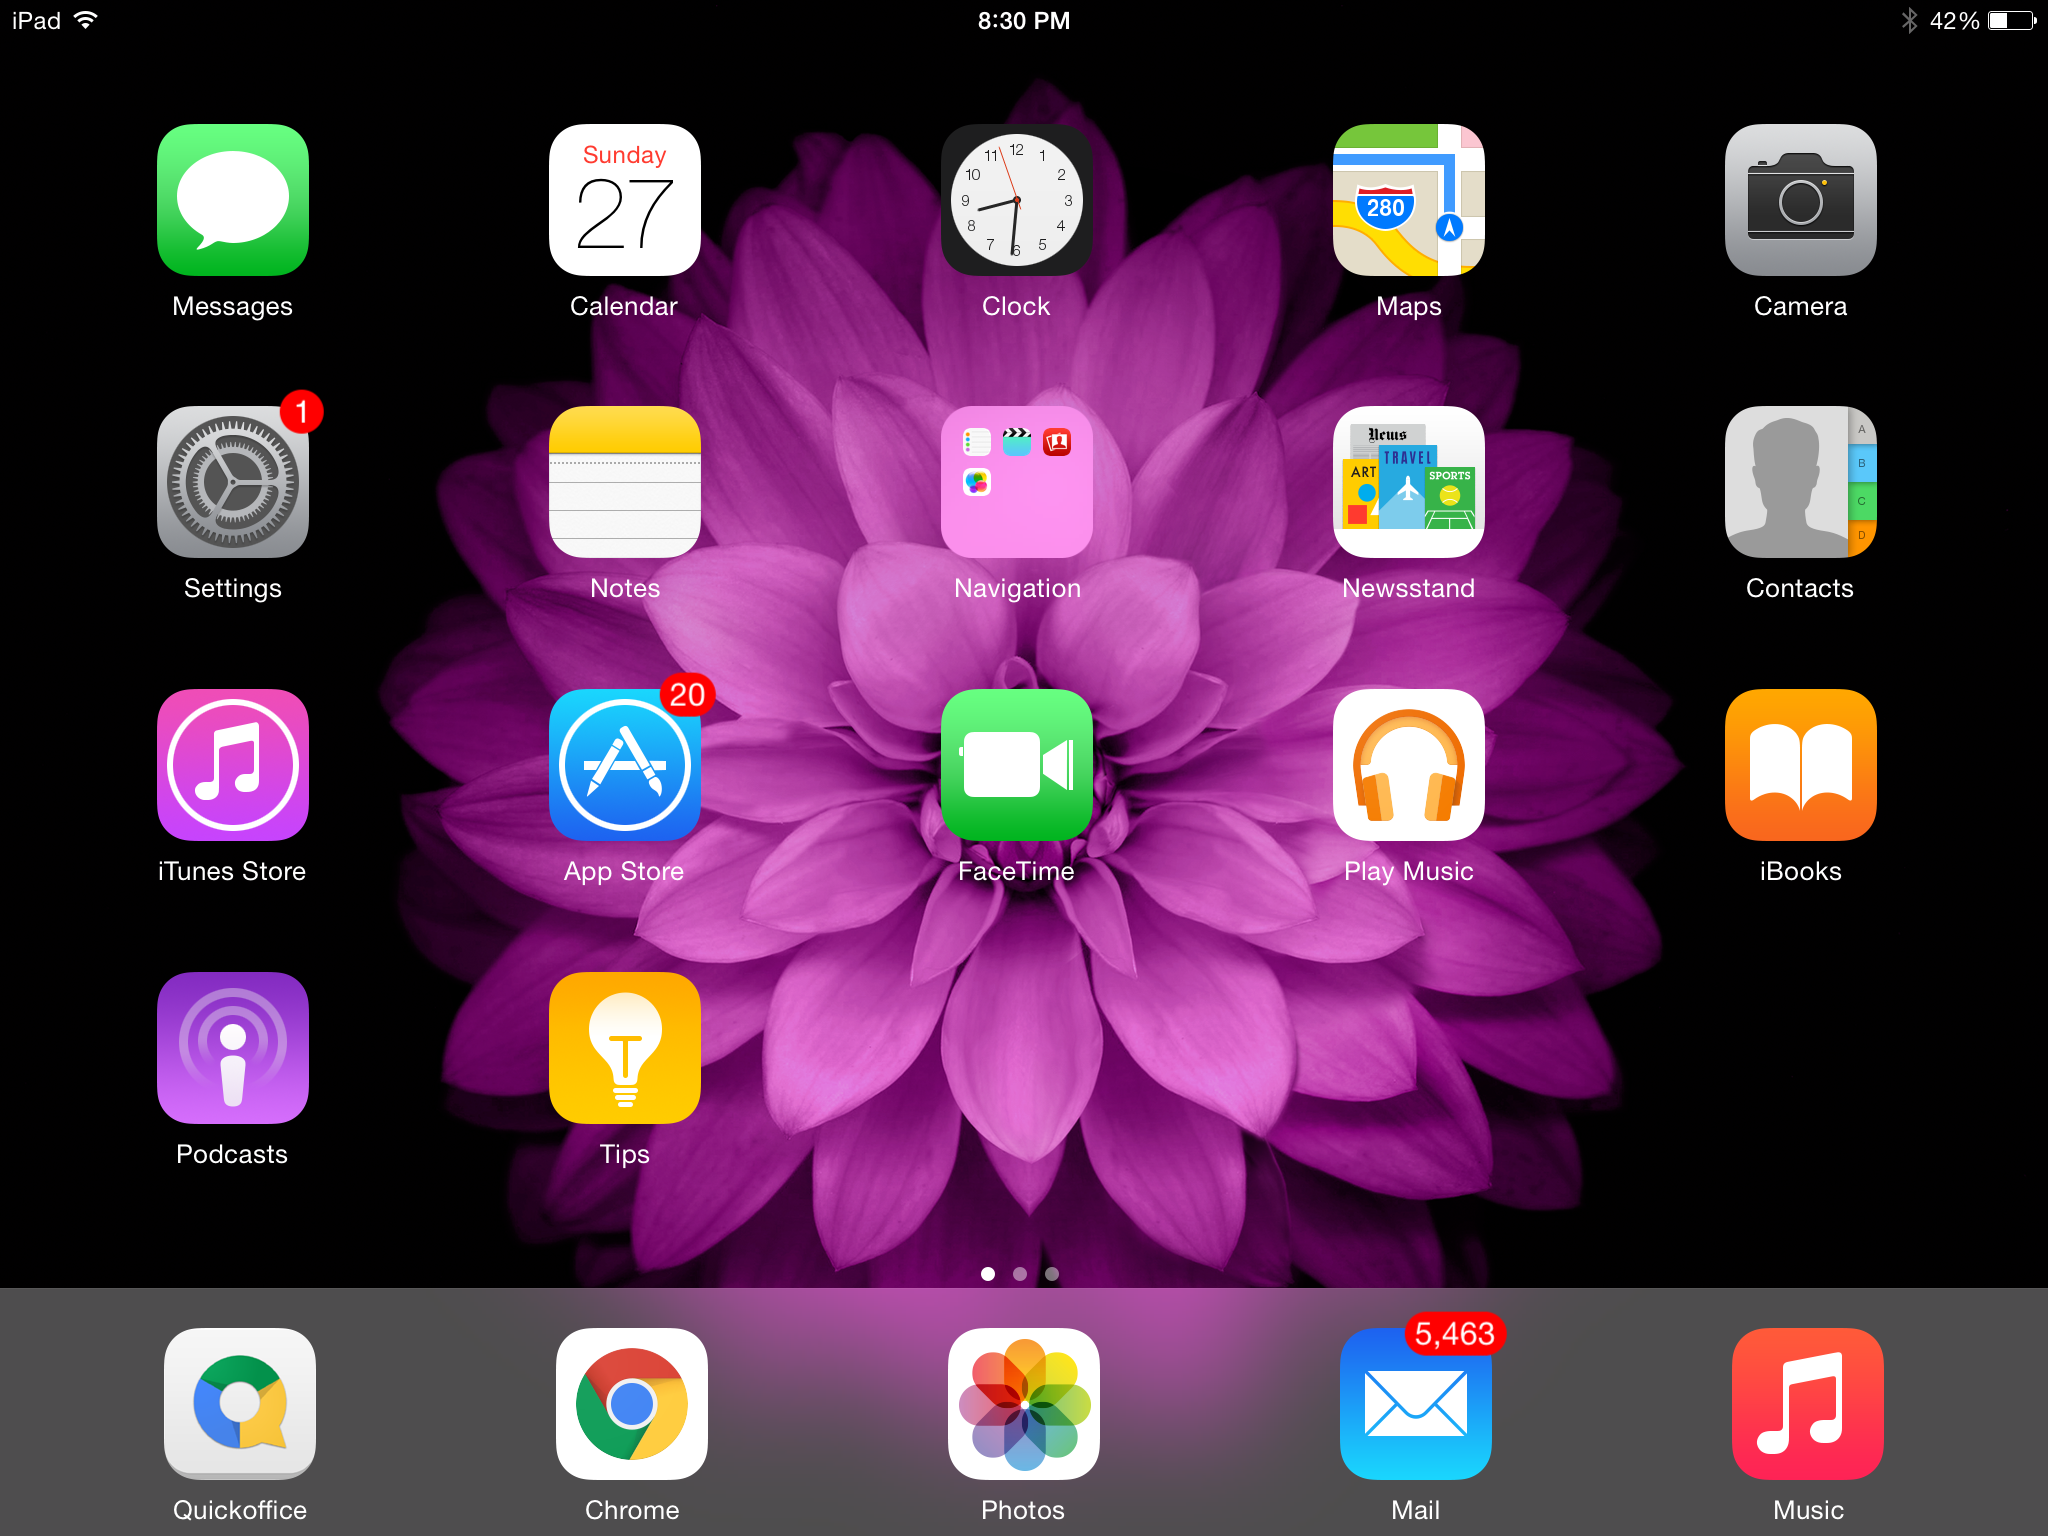 How To Change the Wallpaper on your iPhone or iPad